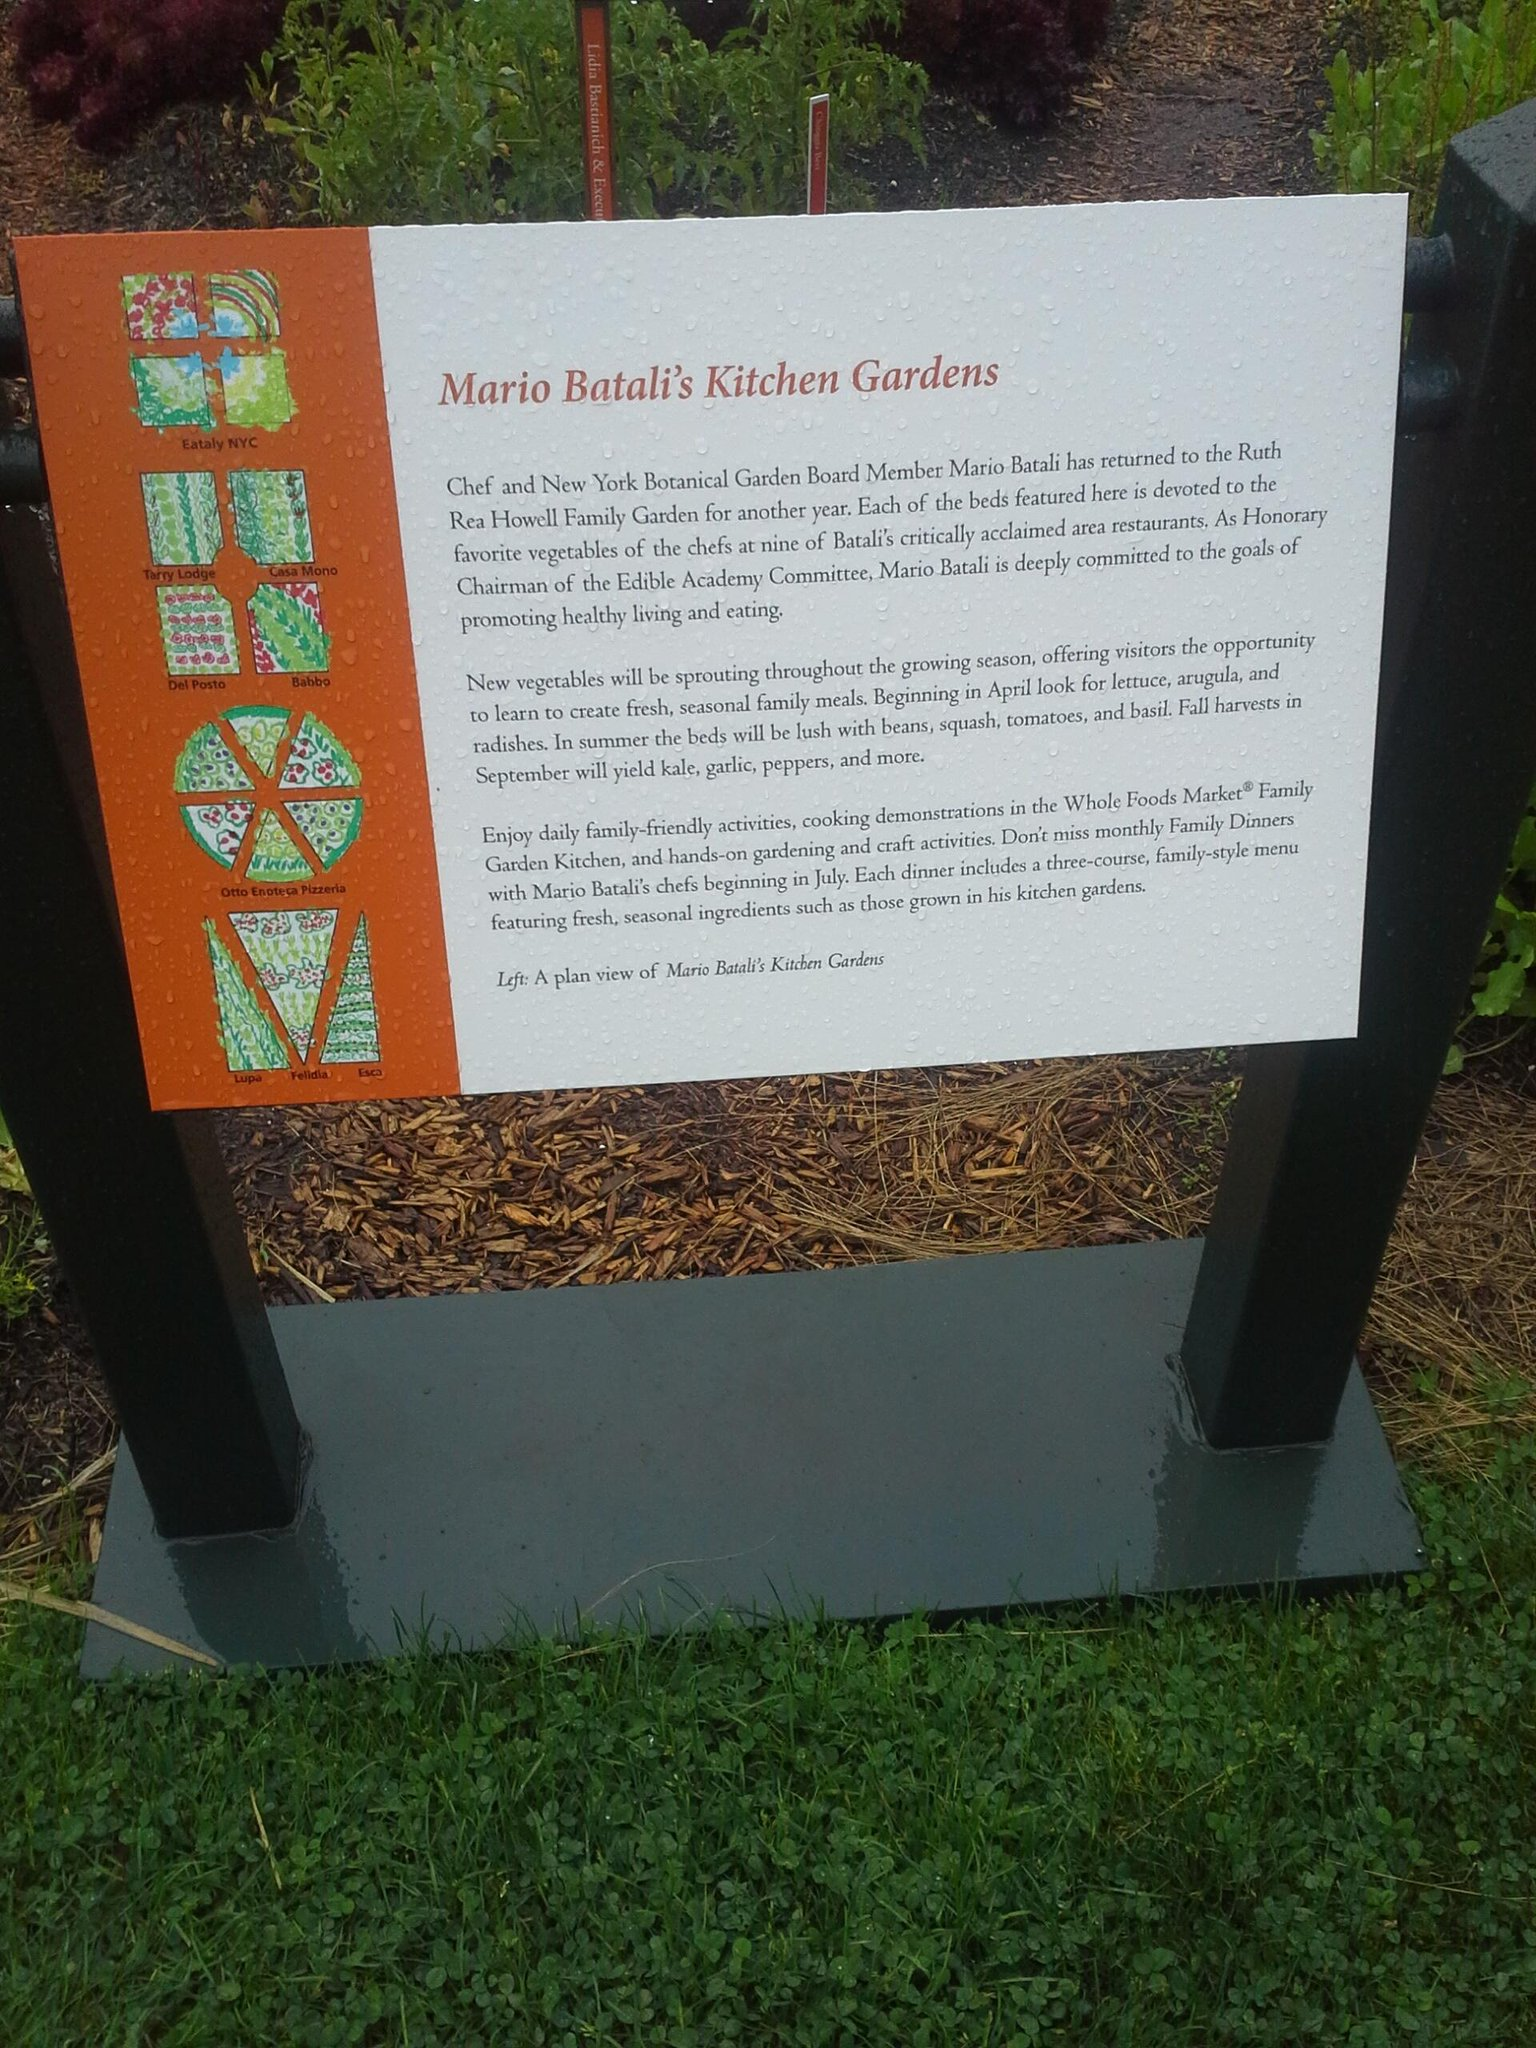 Summer is winding down but the kitchen gardens are in full swing! Come out and see !!!  @nybg http://t.co/ZuoK2aR8Gm